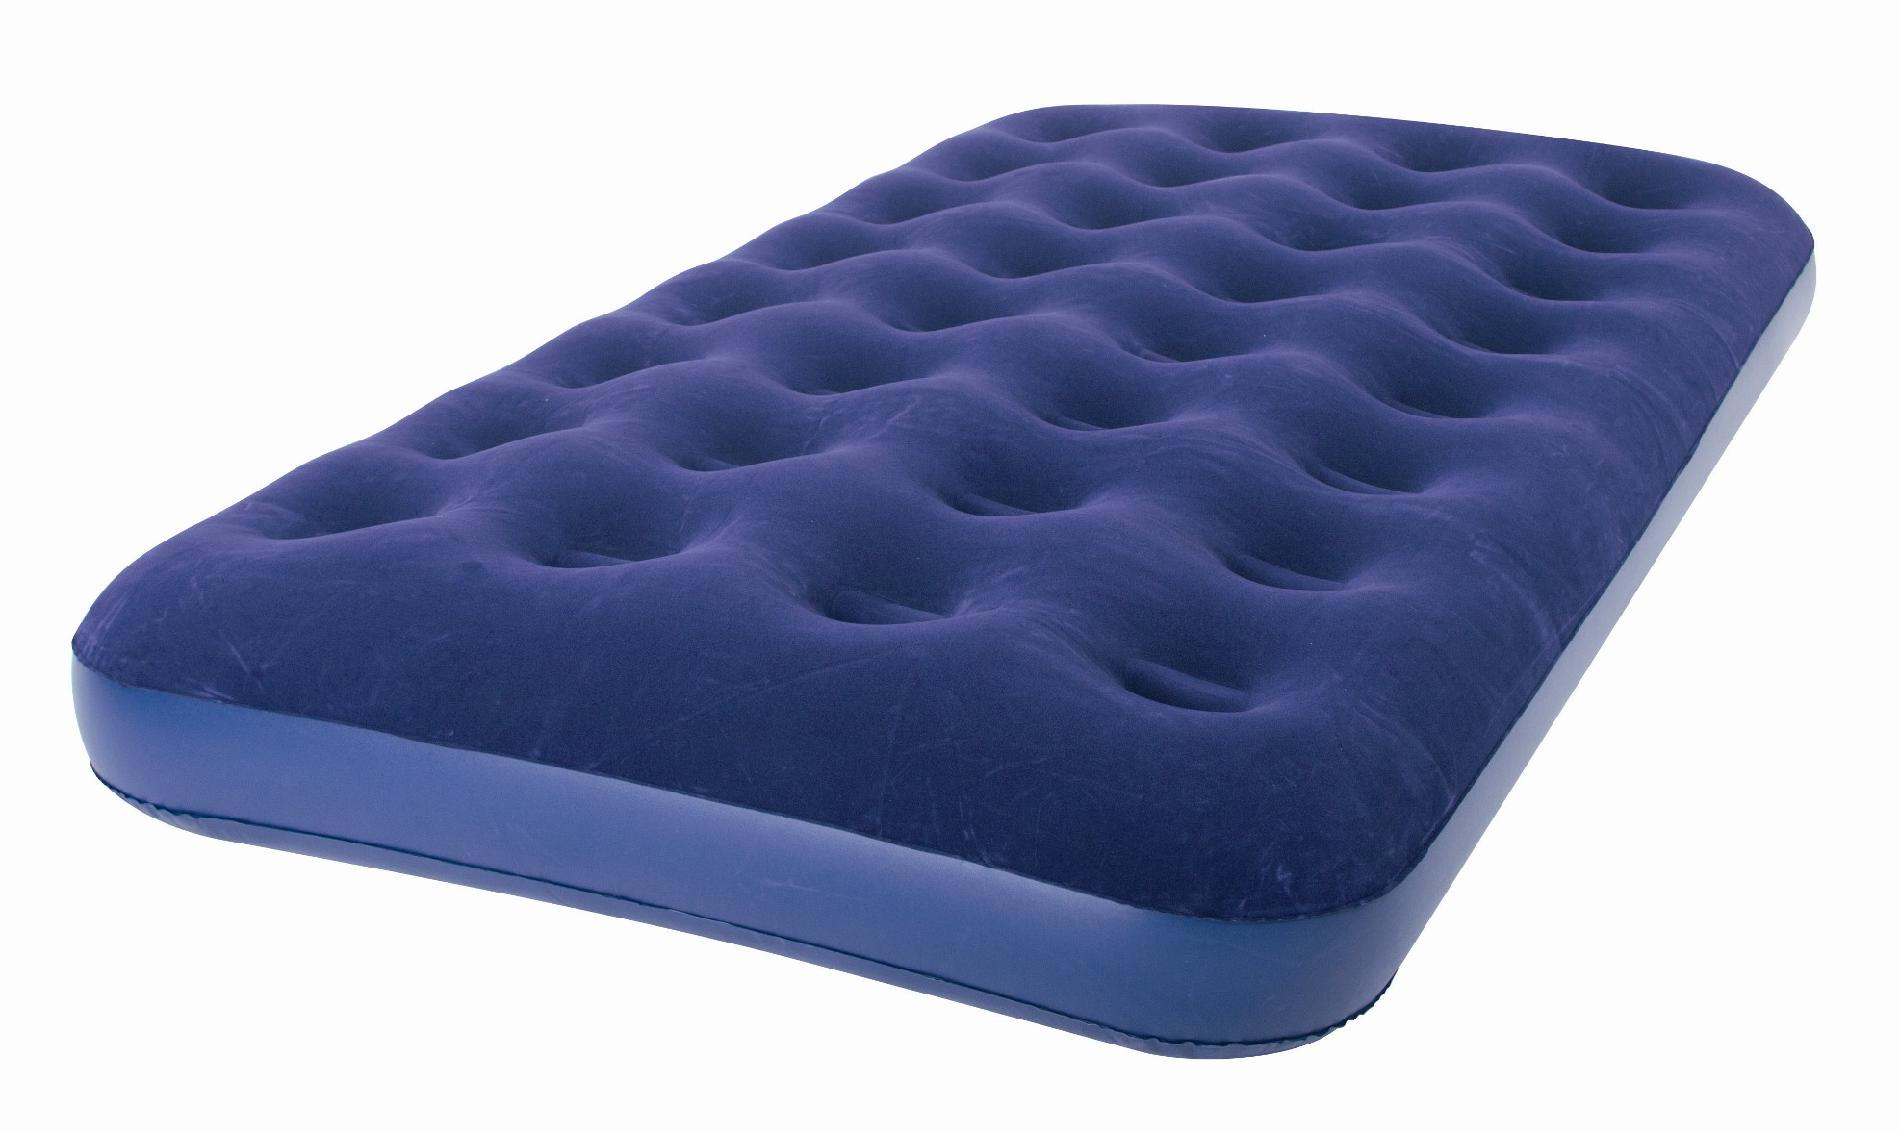 Modern air mattresses northwest territory twin airbed with inner coils ahkpvzk